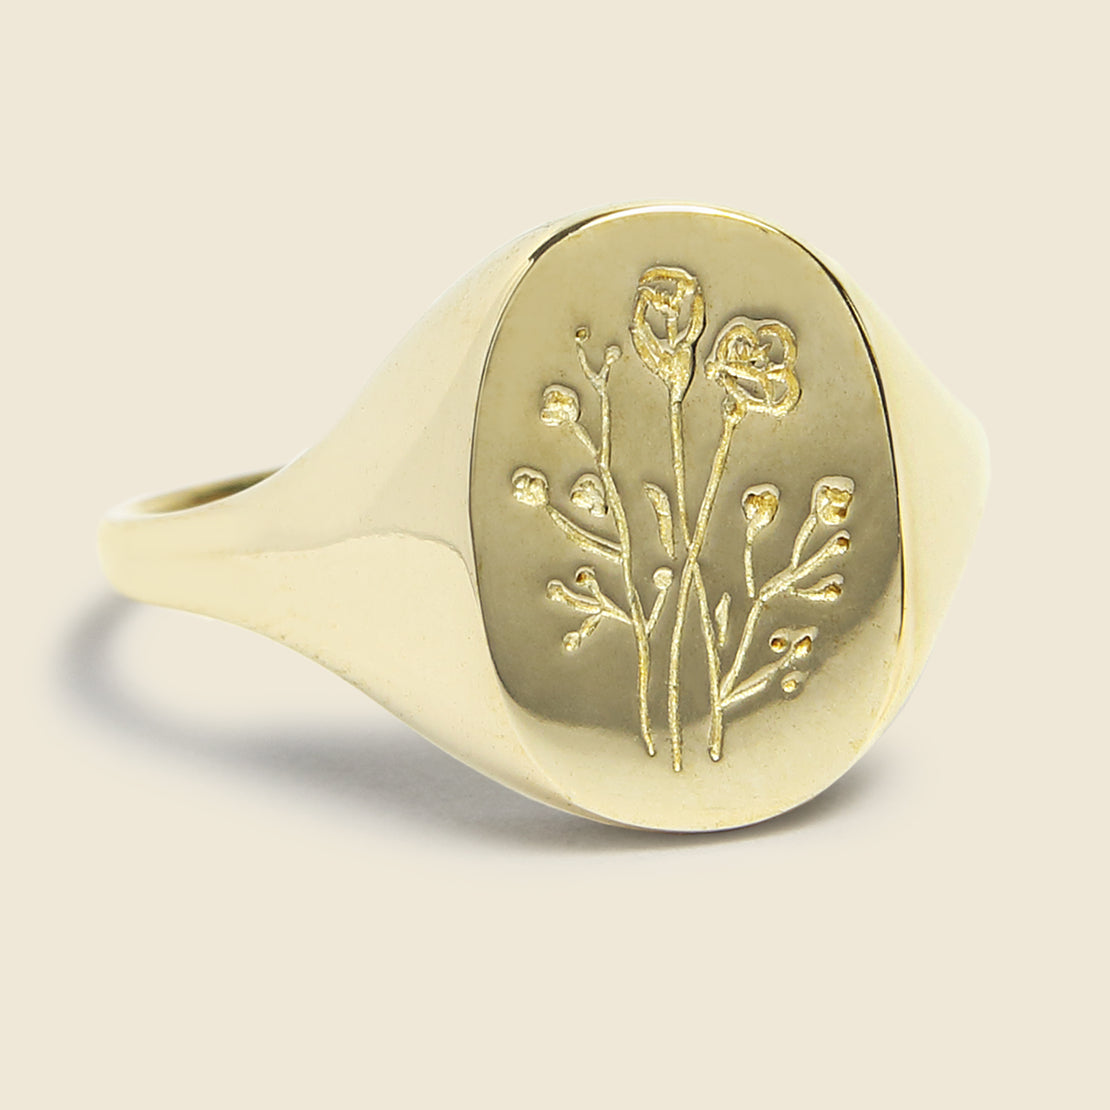 Claus Wildflower Signet Ring - Brass